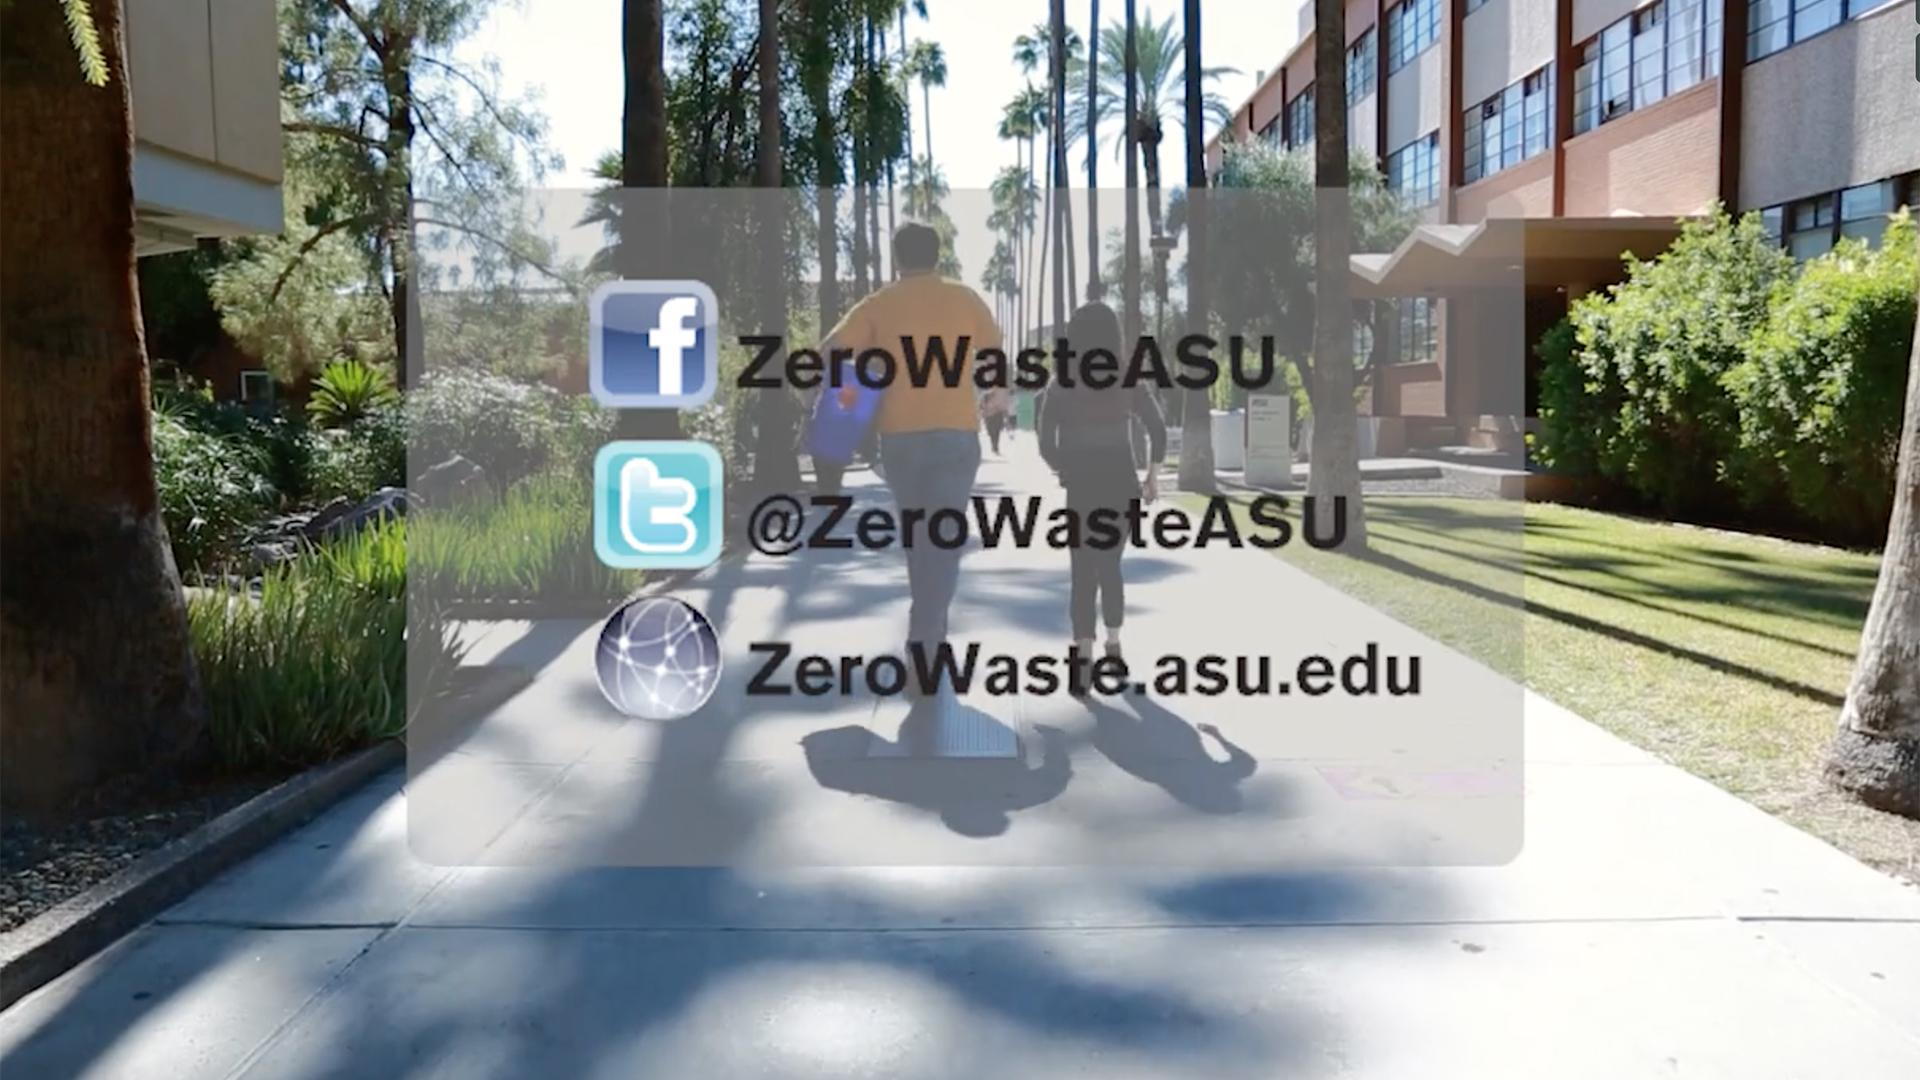 Social media links for Zero waste